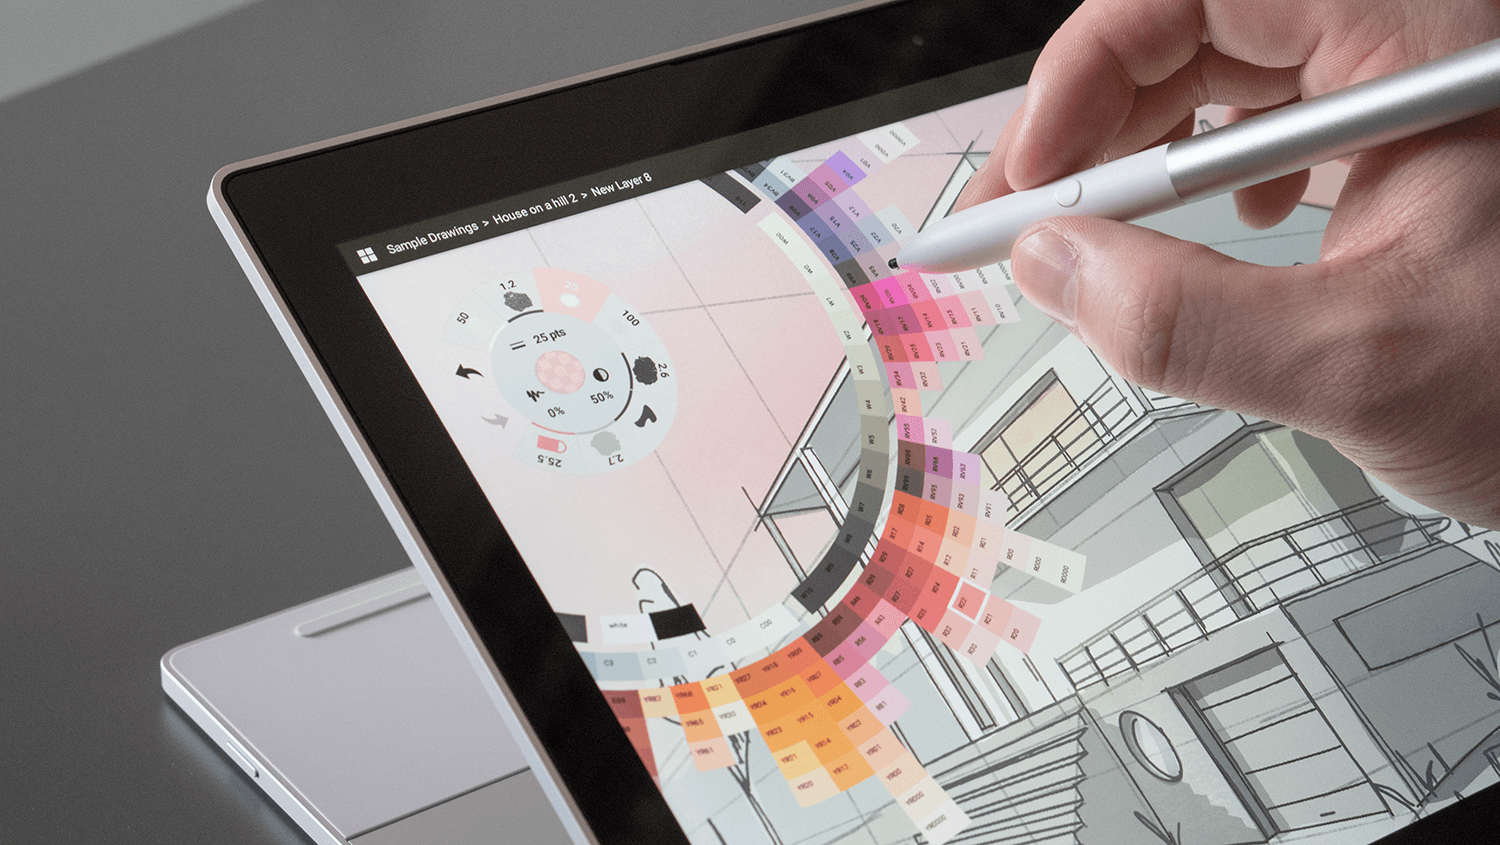 Screen interaction with stylus pen